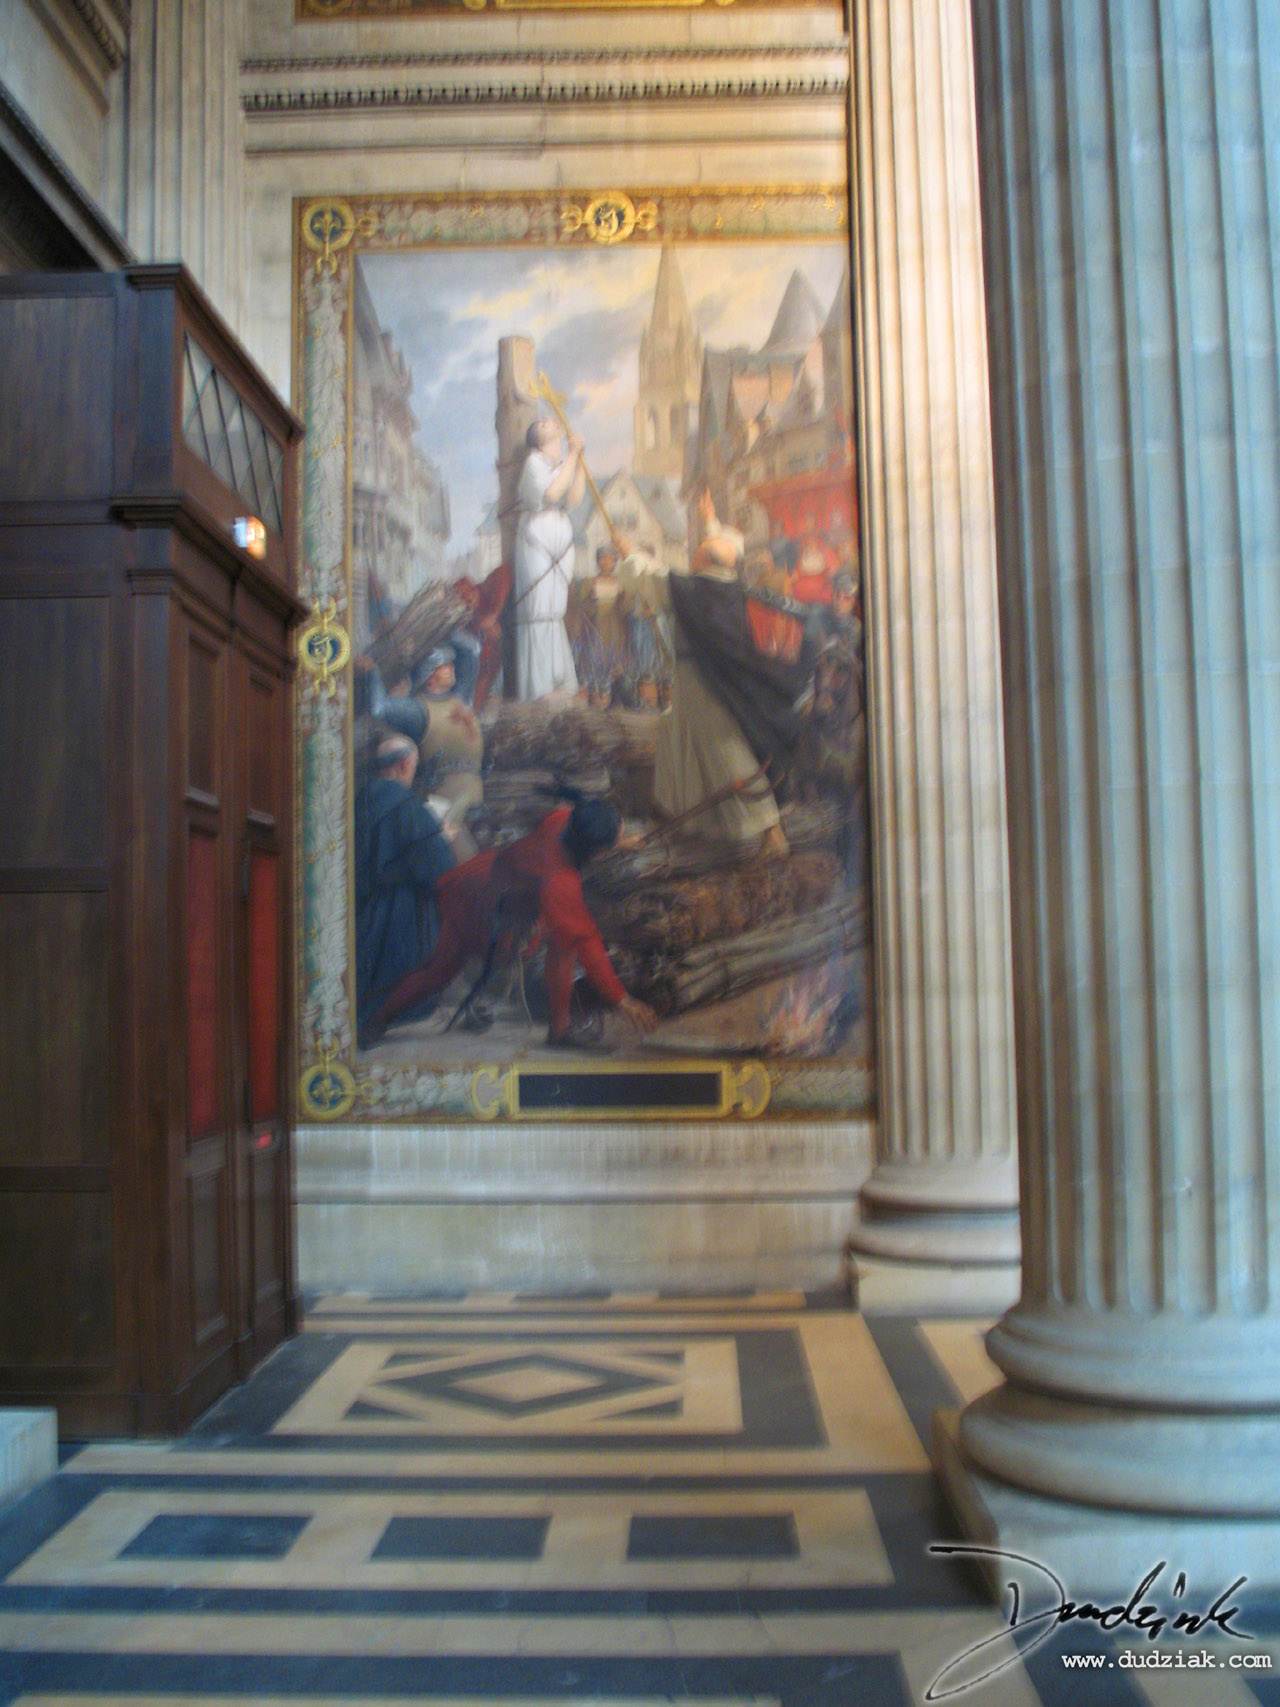 Picture of the fourth section of the Joan of Arc Mural within the Paris Pantheon.